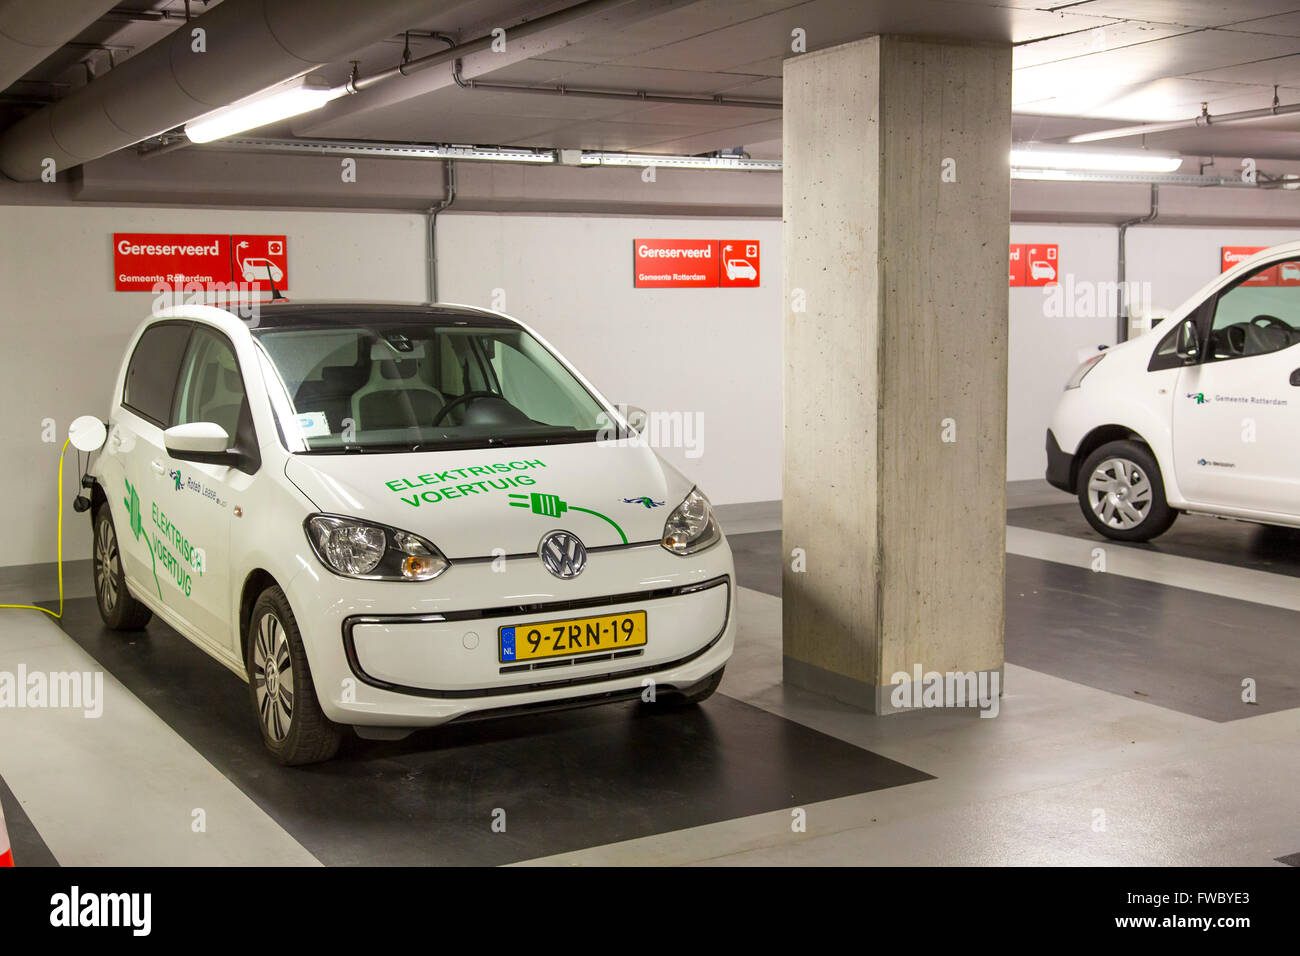 Auto Garage Rotterdam : Charging station for electric cars in a public parking garage stock